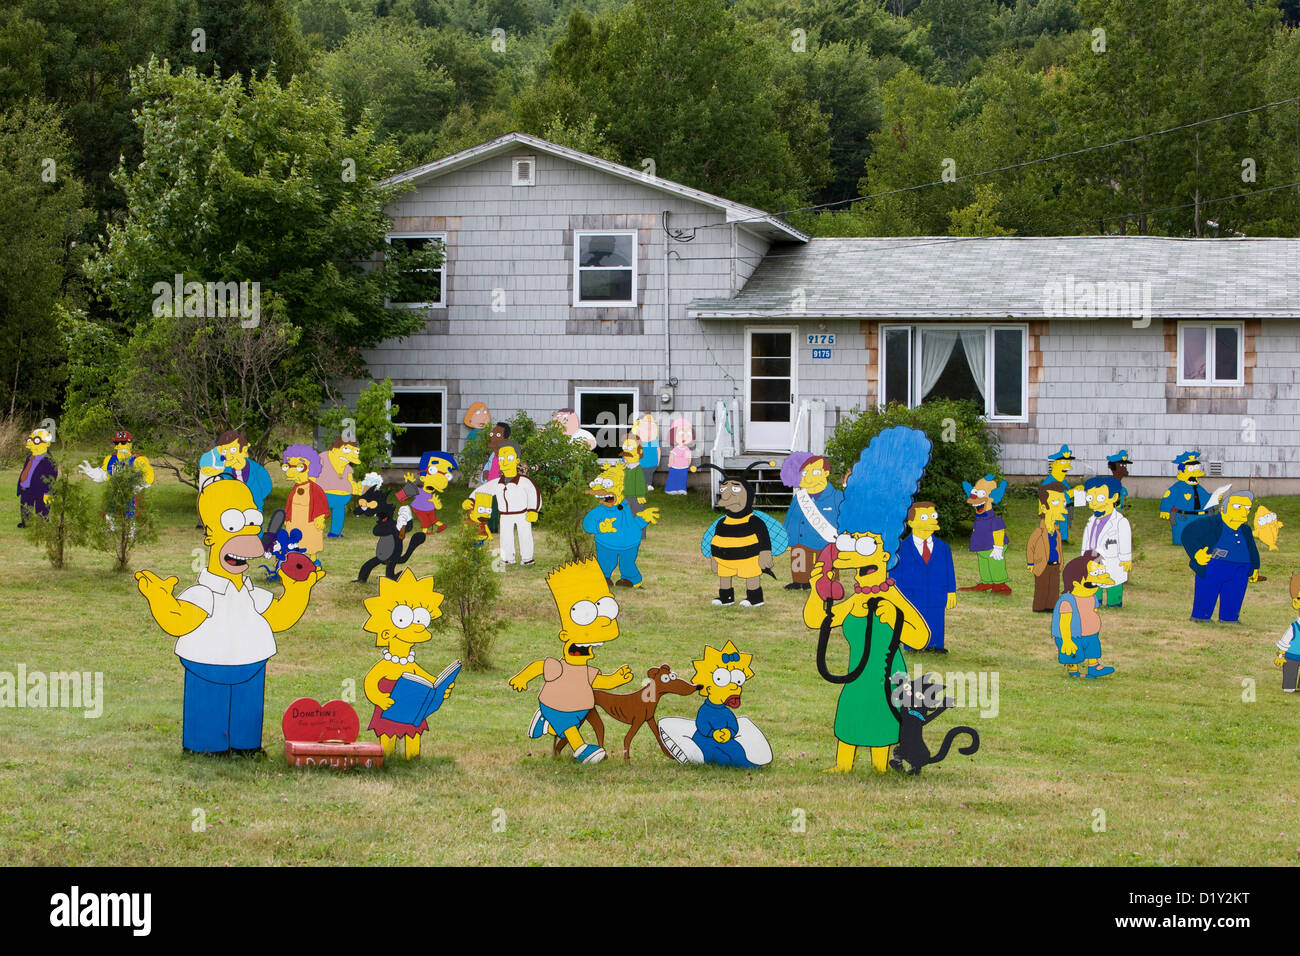 The Simpsons family cartoon characters cardboard cutouts in a garden in Nova Scotia - Stock Image